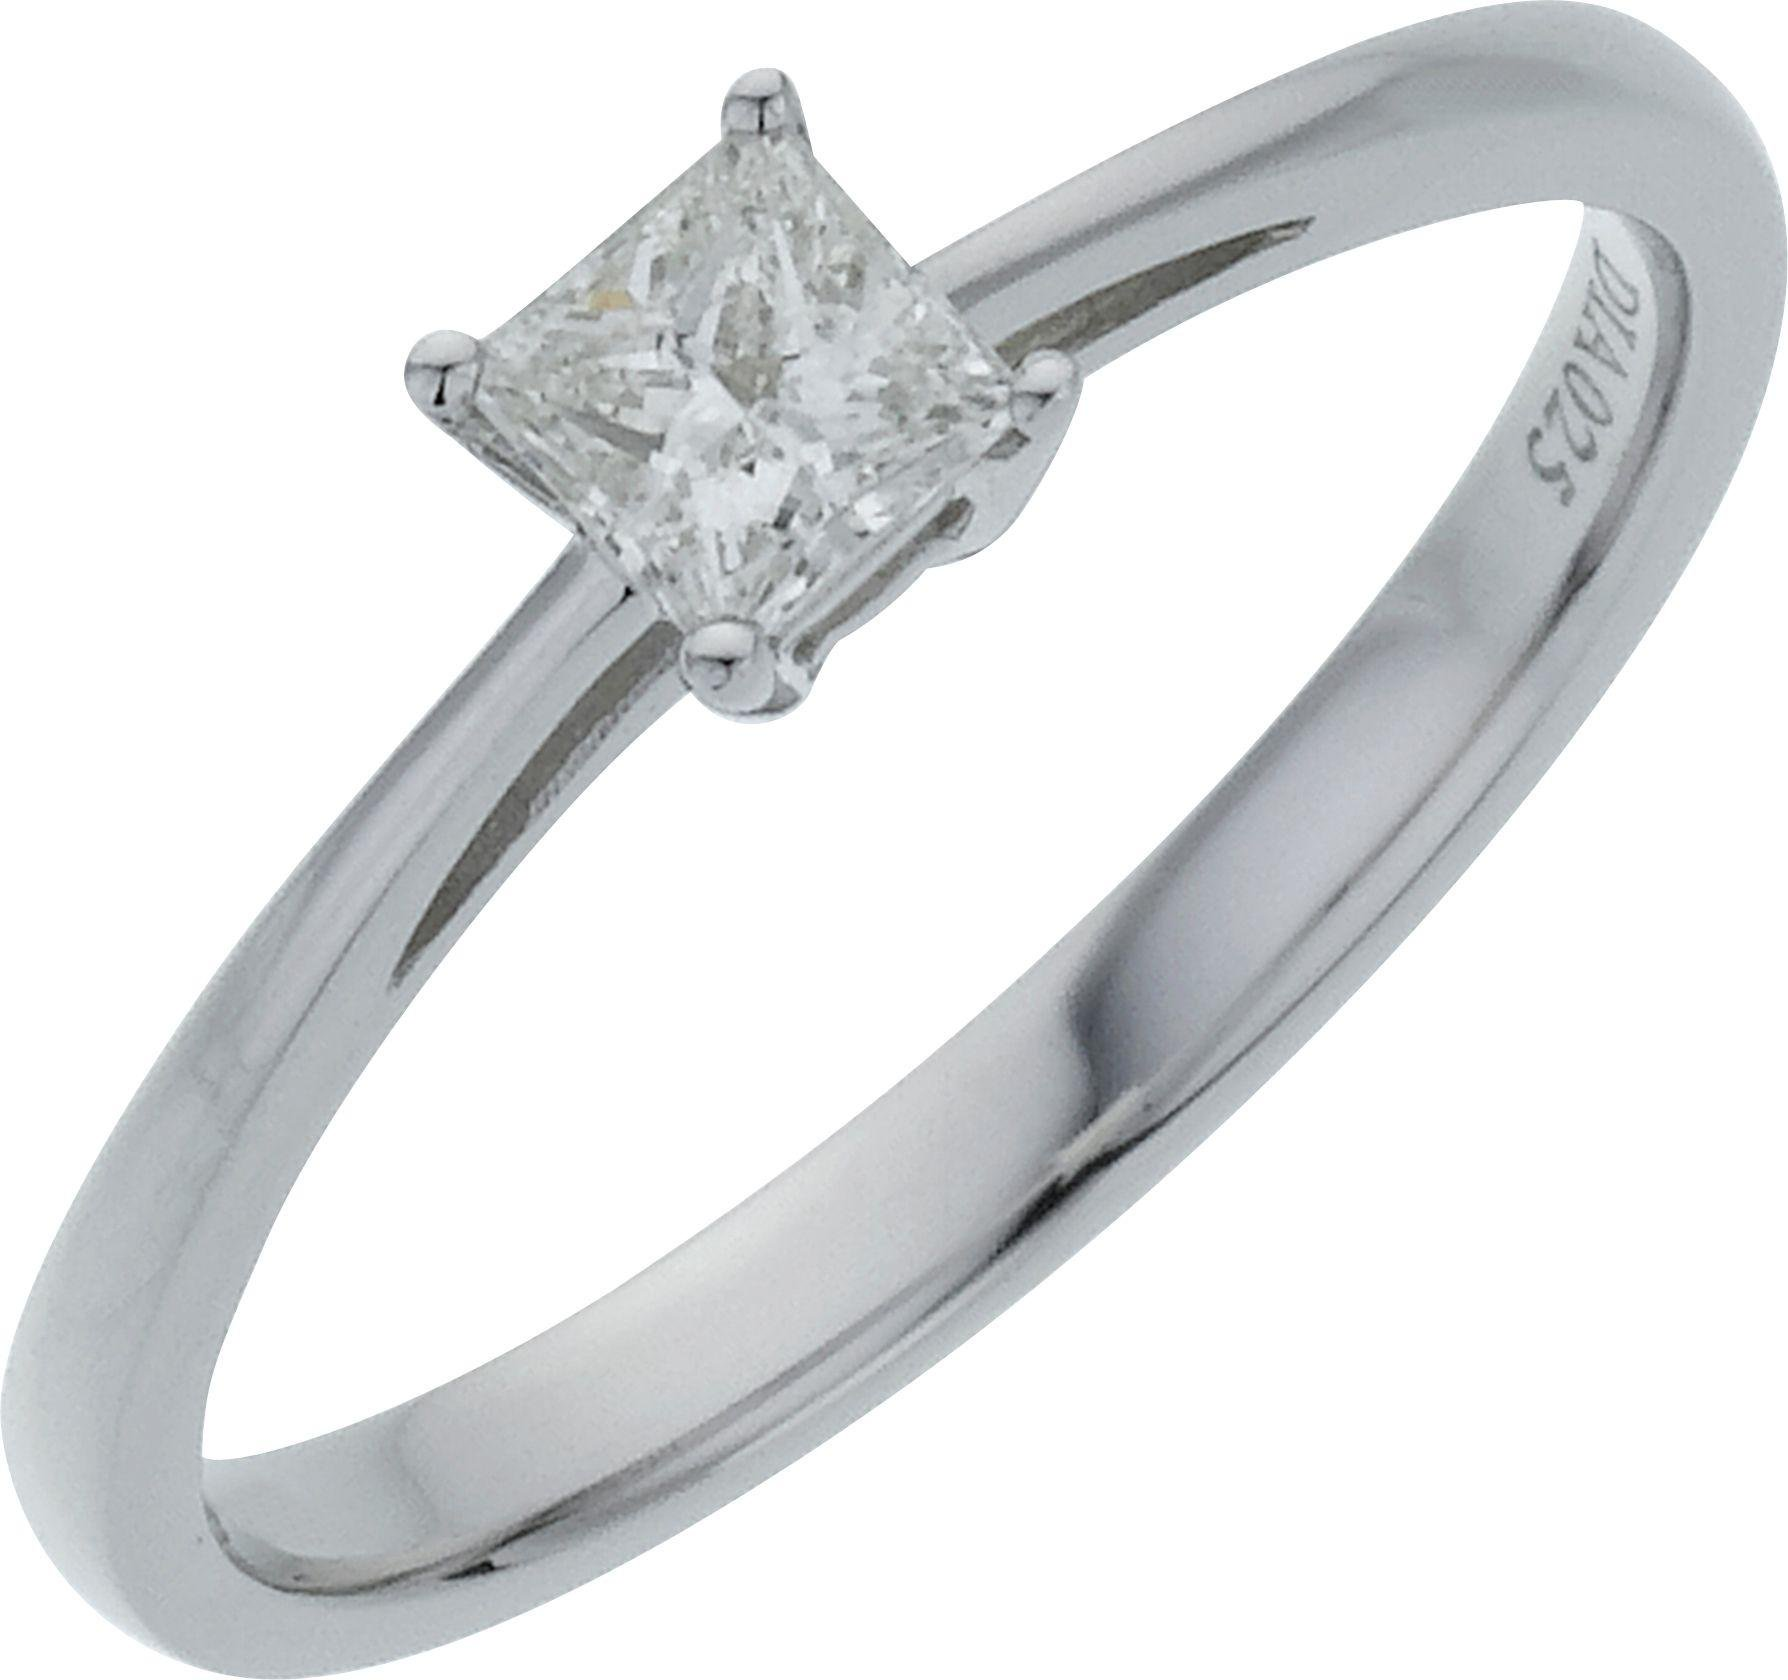 18 Carat White Gold 025 Carat Diamond - Princess Cut Diamond - Ring - N